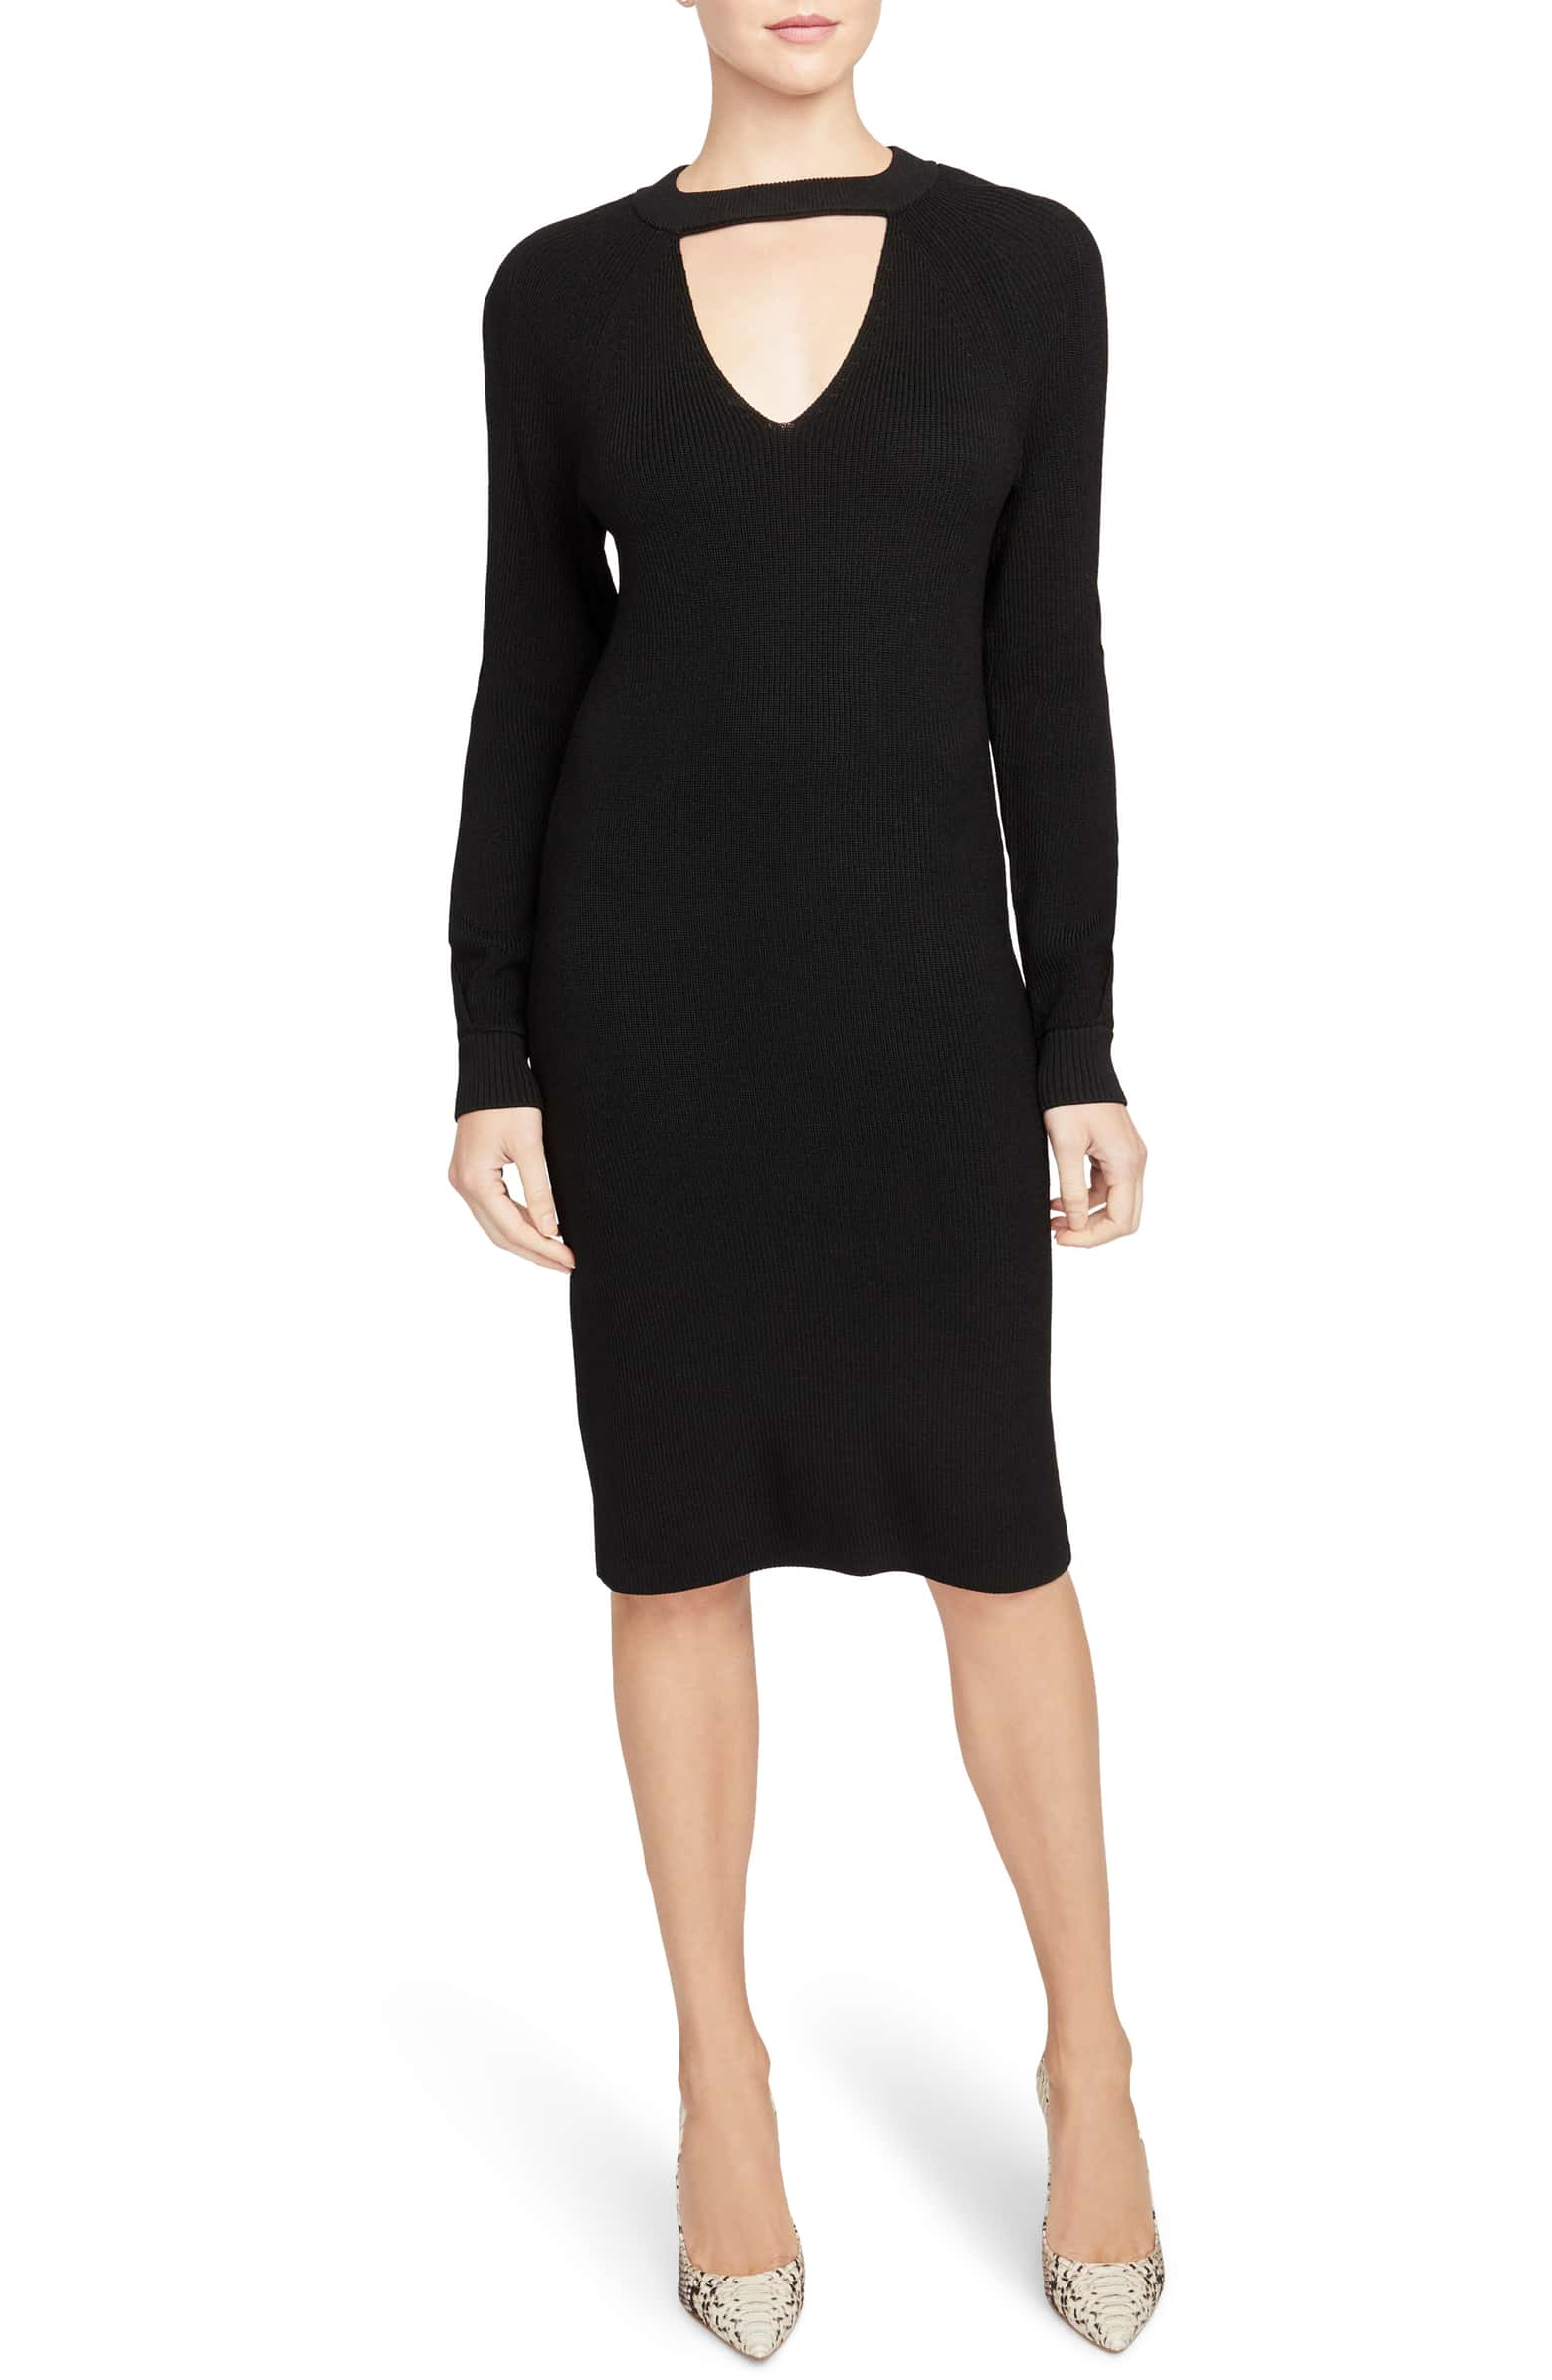 Keyhole Detail Sweater Dress RACHEL ROY COLLECTION